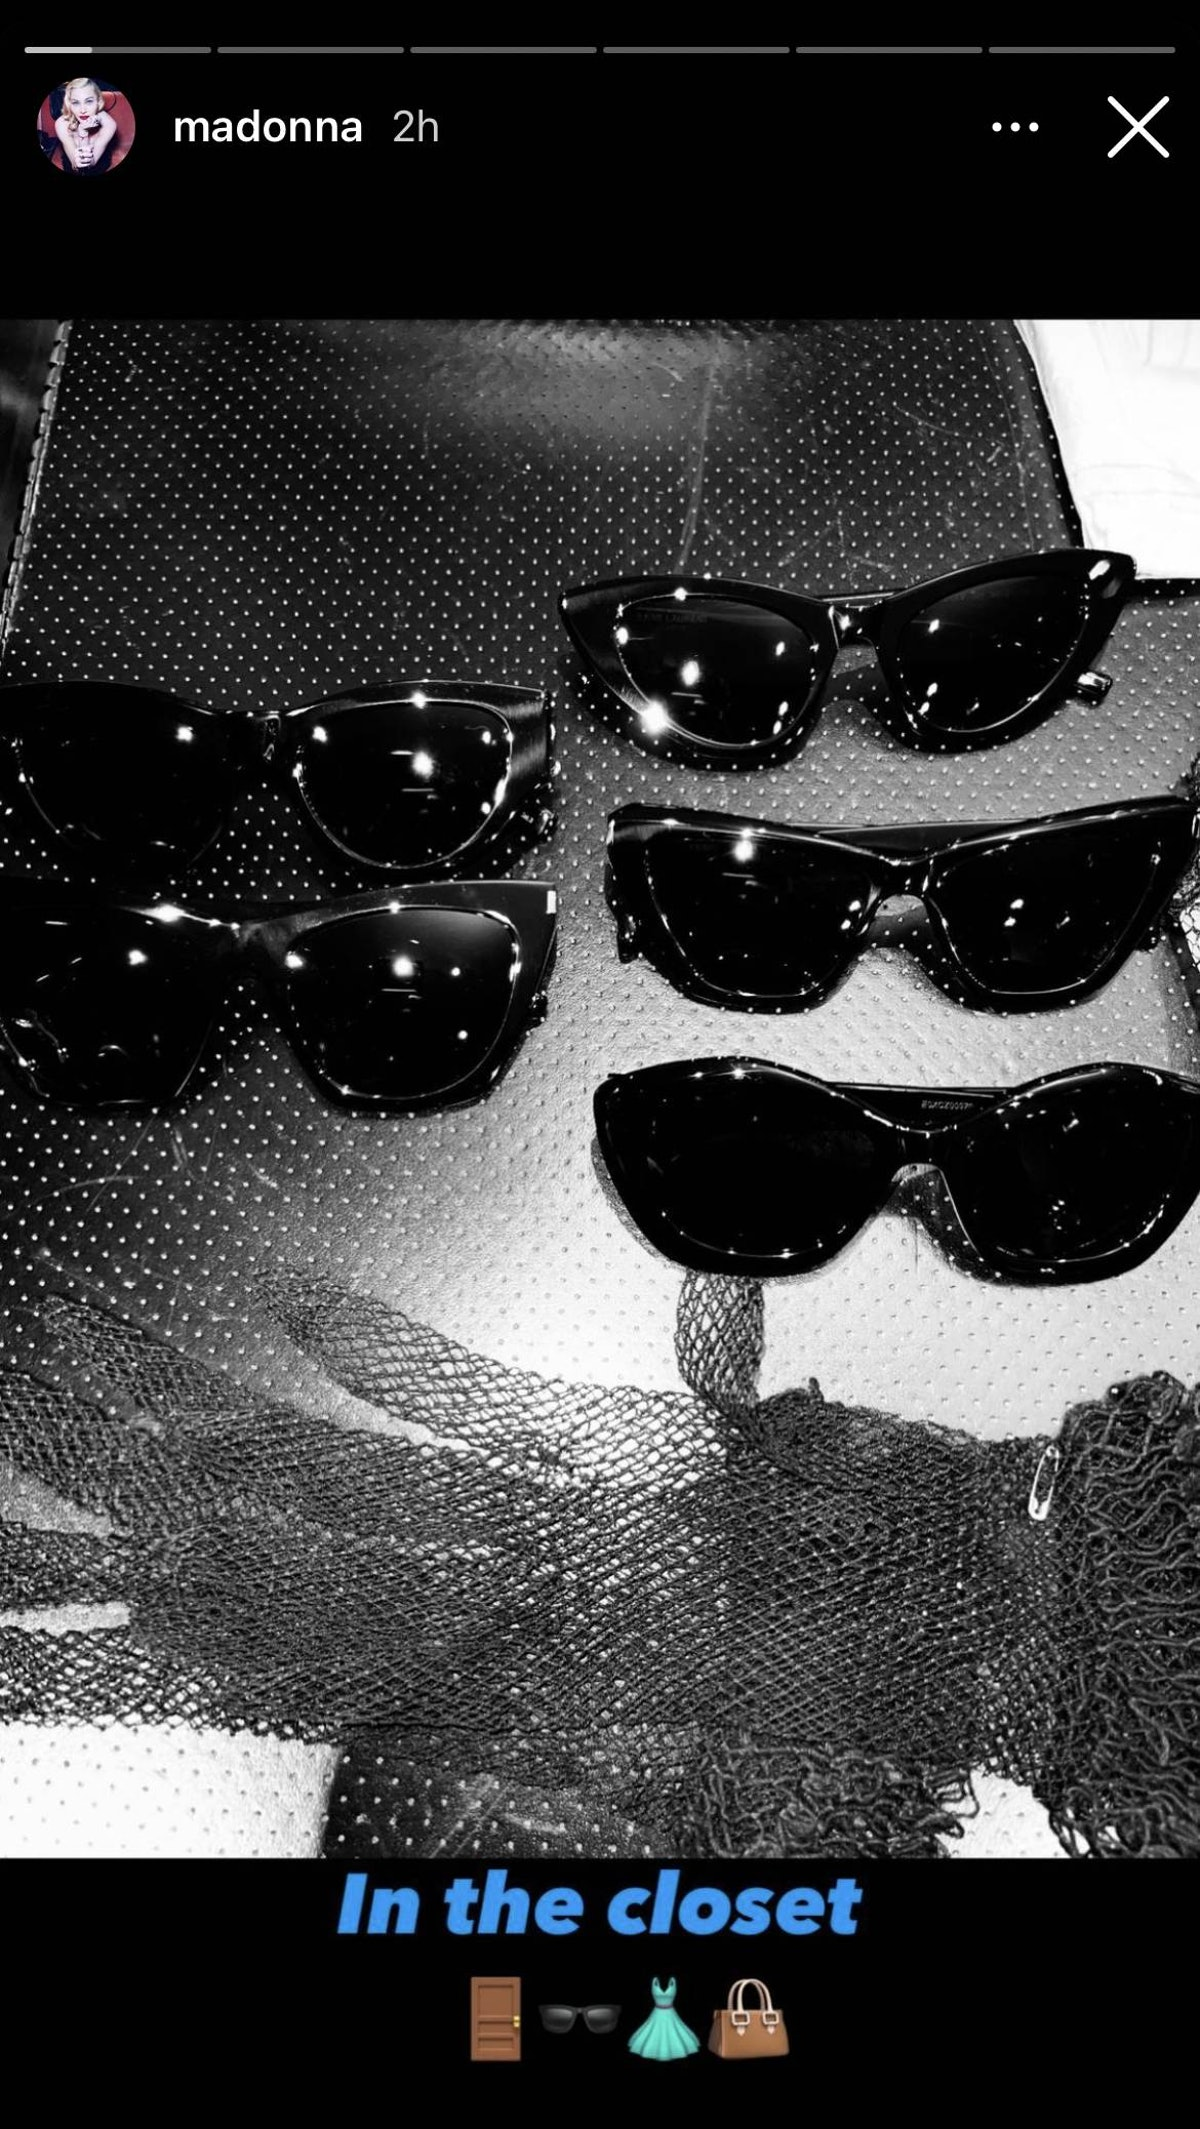 Madonna's black sunglasses collection in a tray.